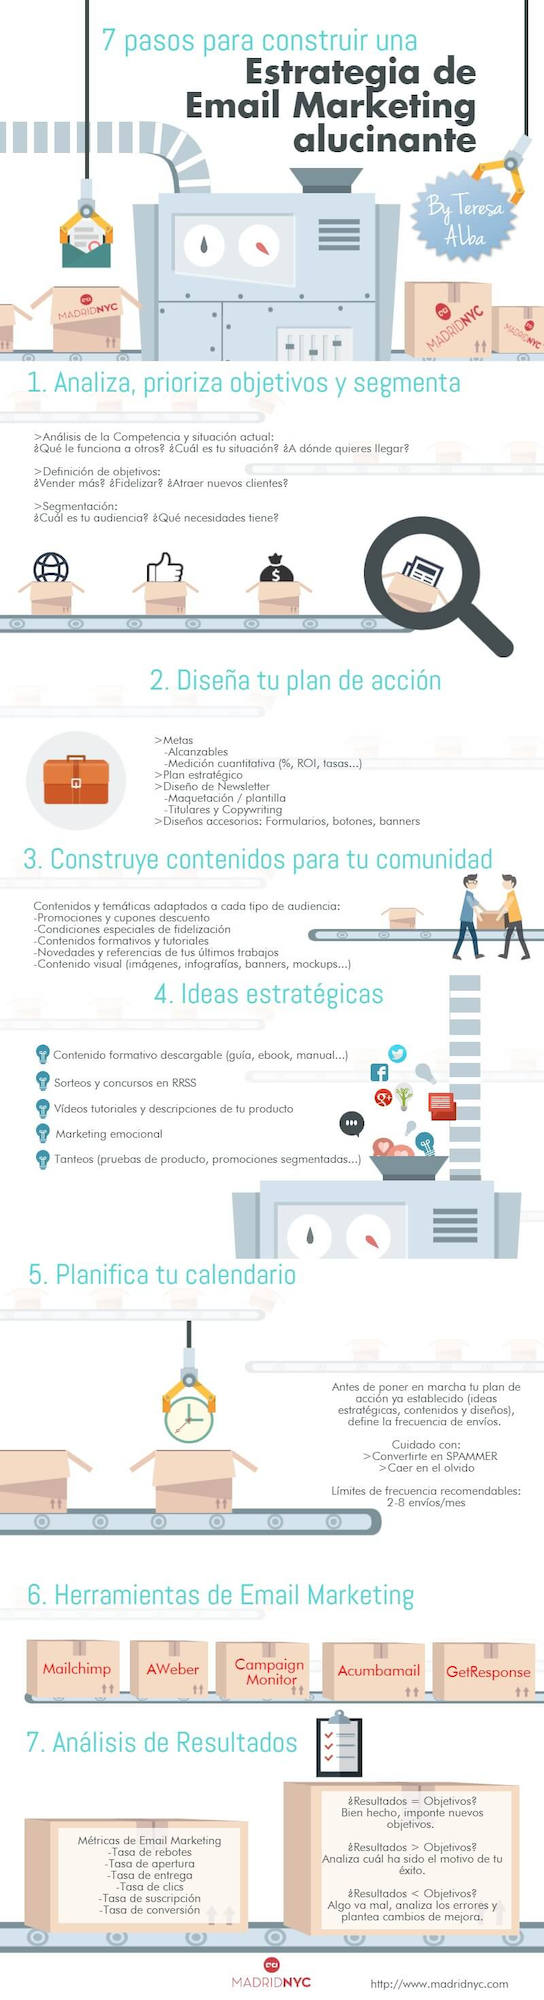 7 Pasos para crear una estrategia de email marketing